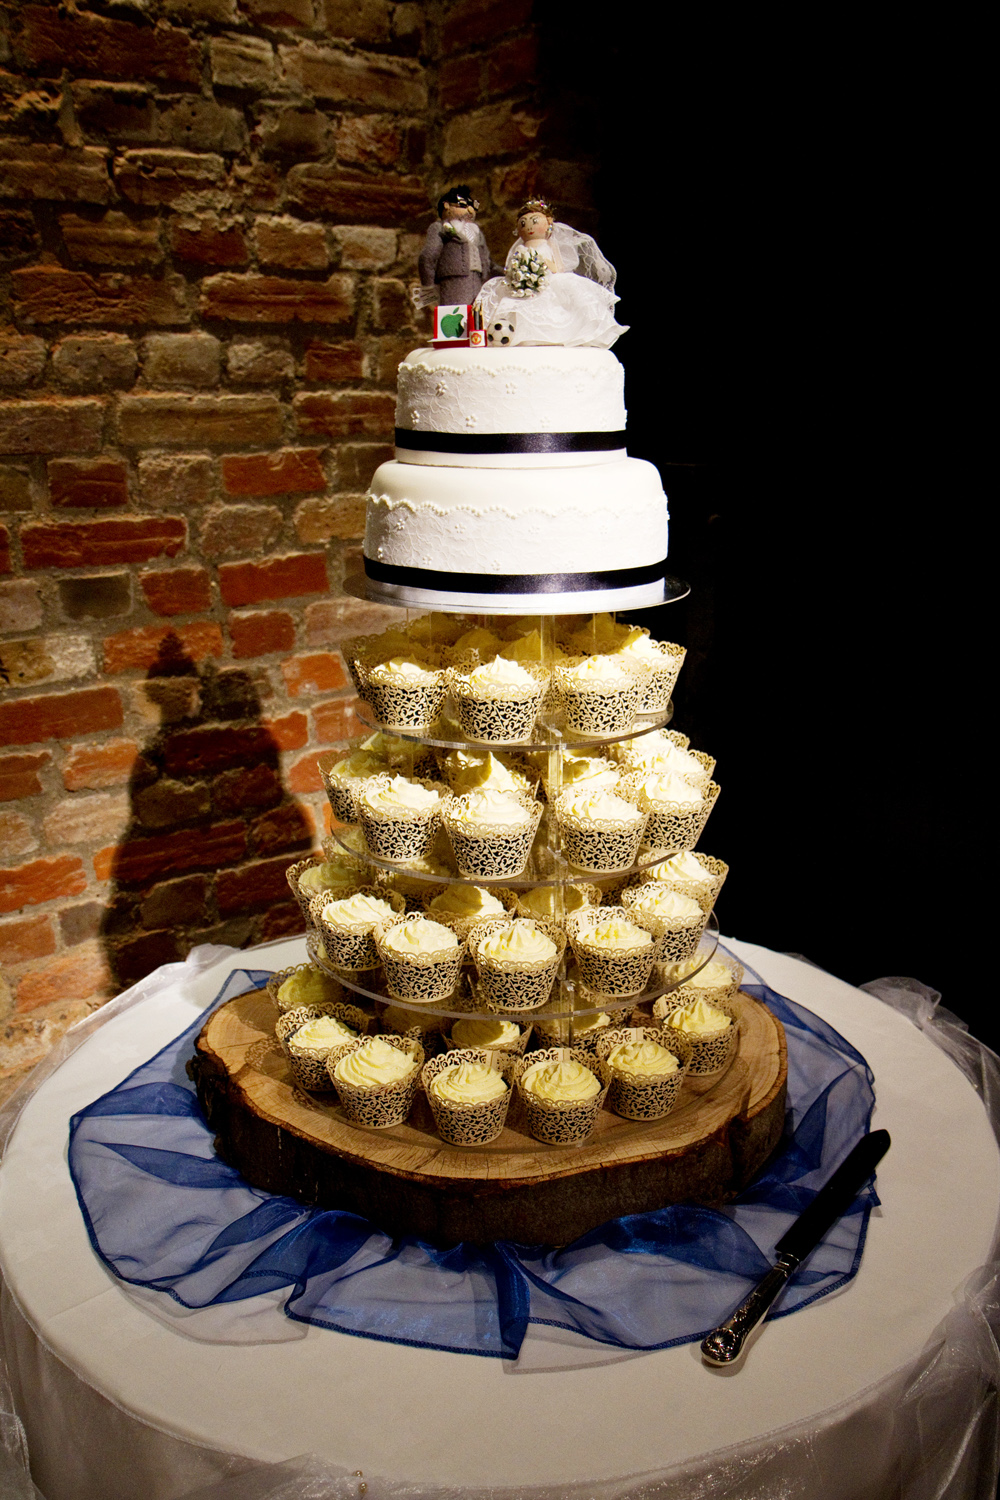 Cupcake Tiered Wedding Cake, Helen England Photography, Kent, U.K